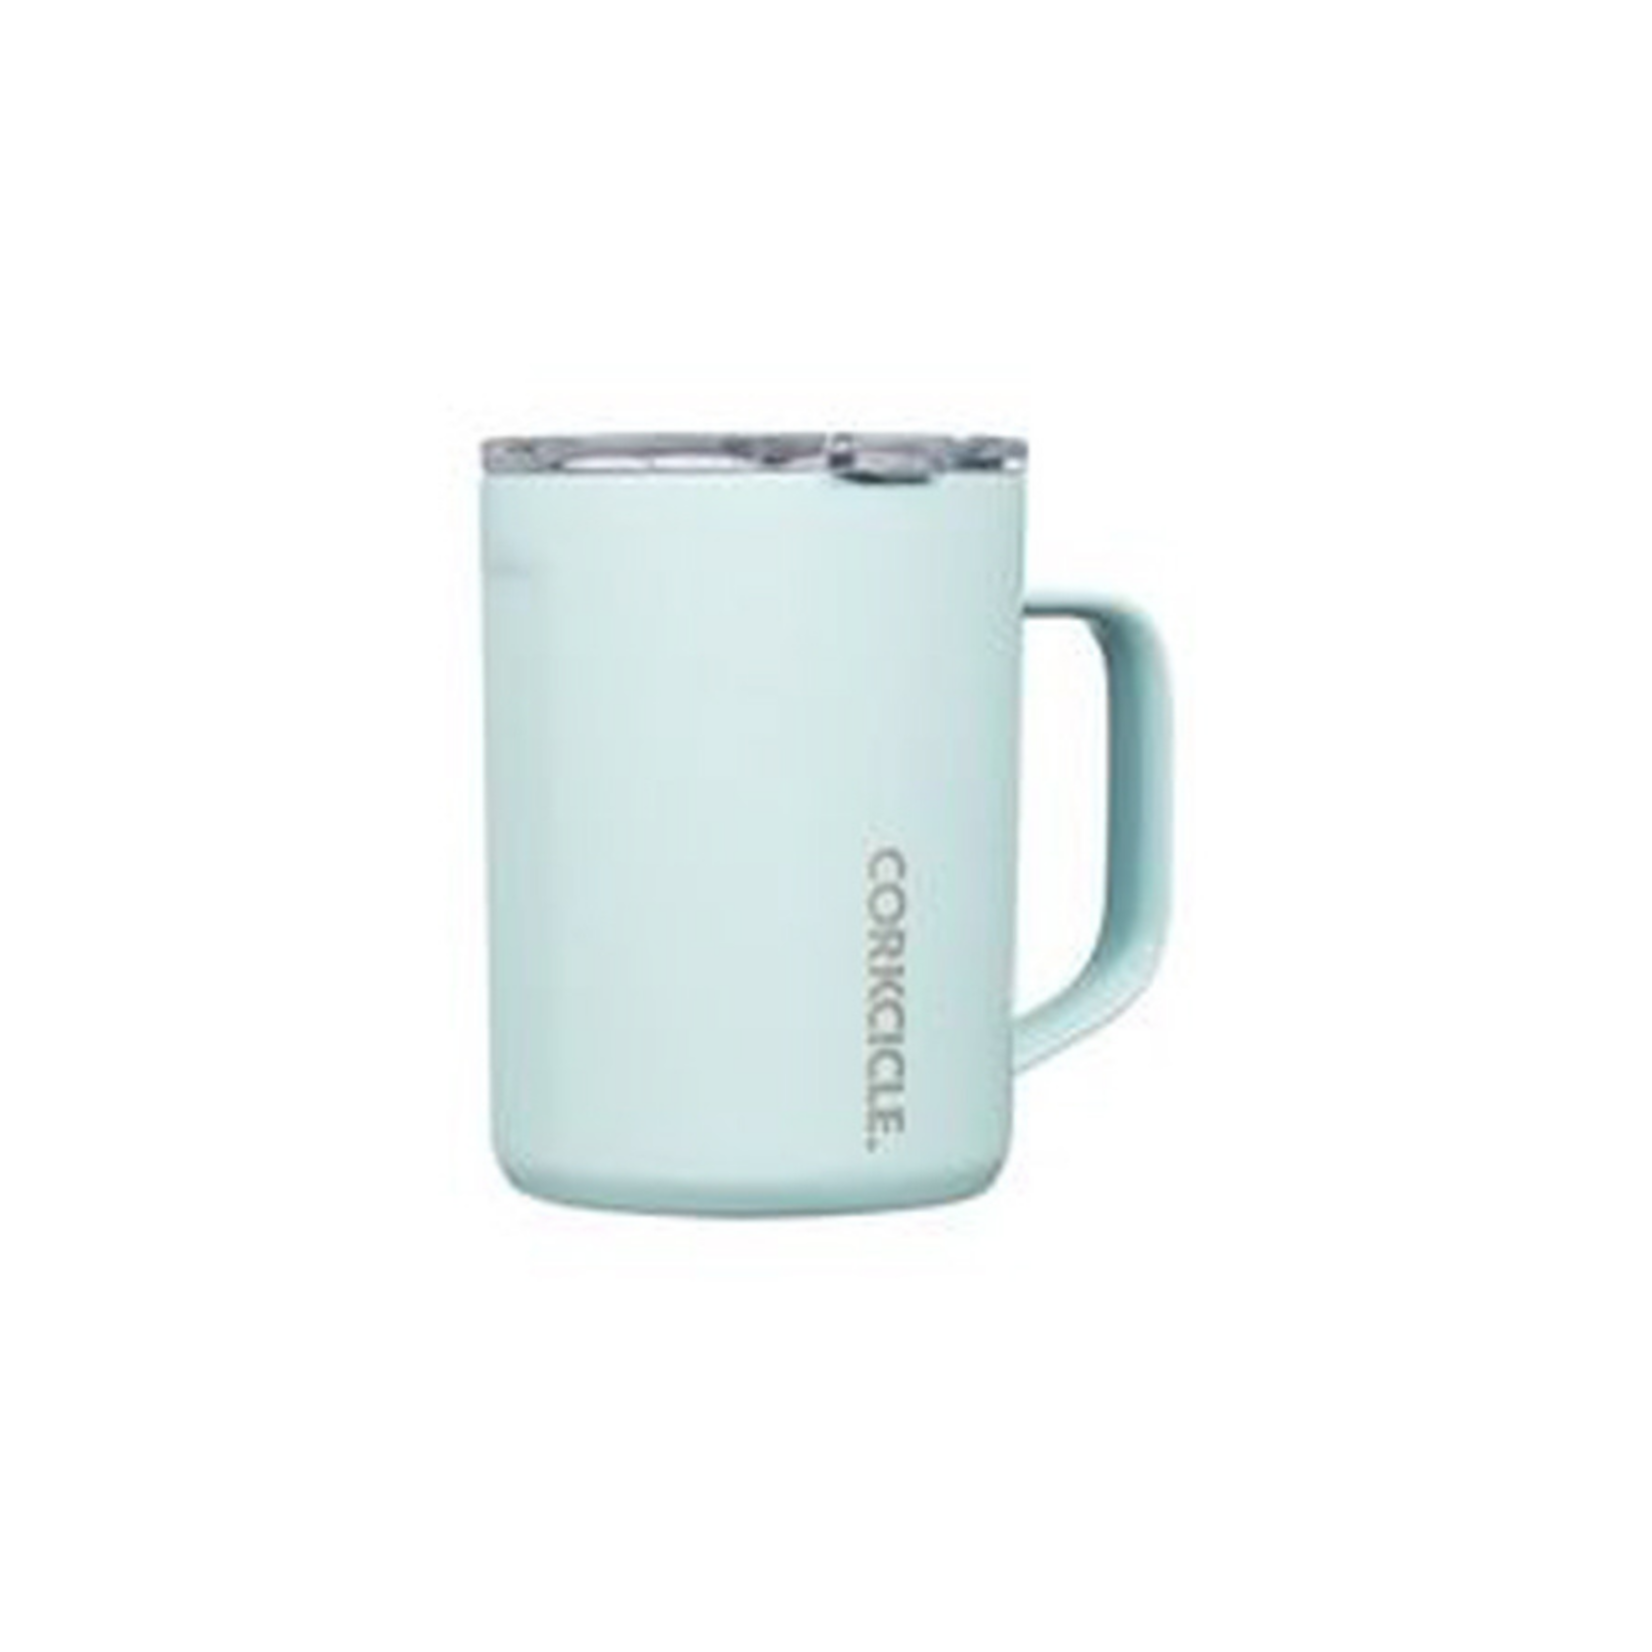 16oz Mug Powder Blue